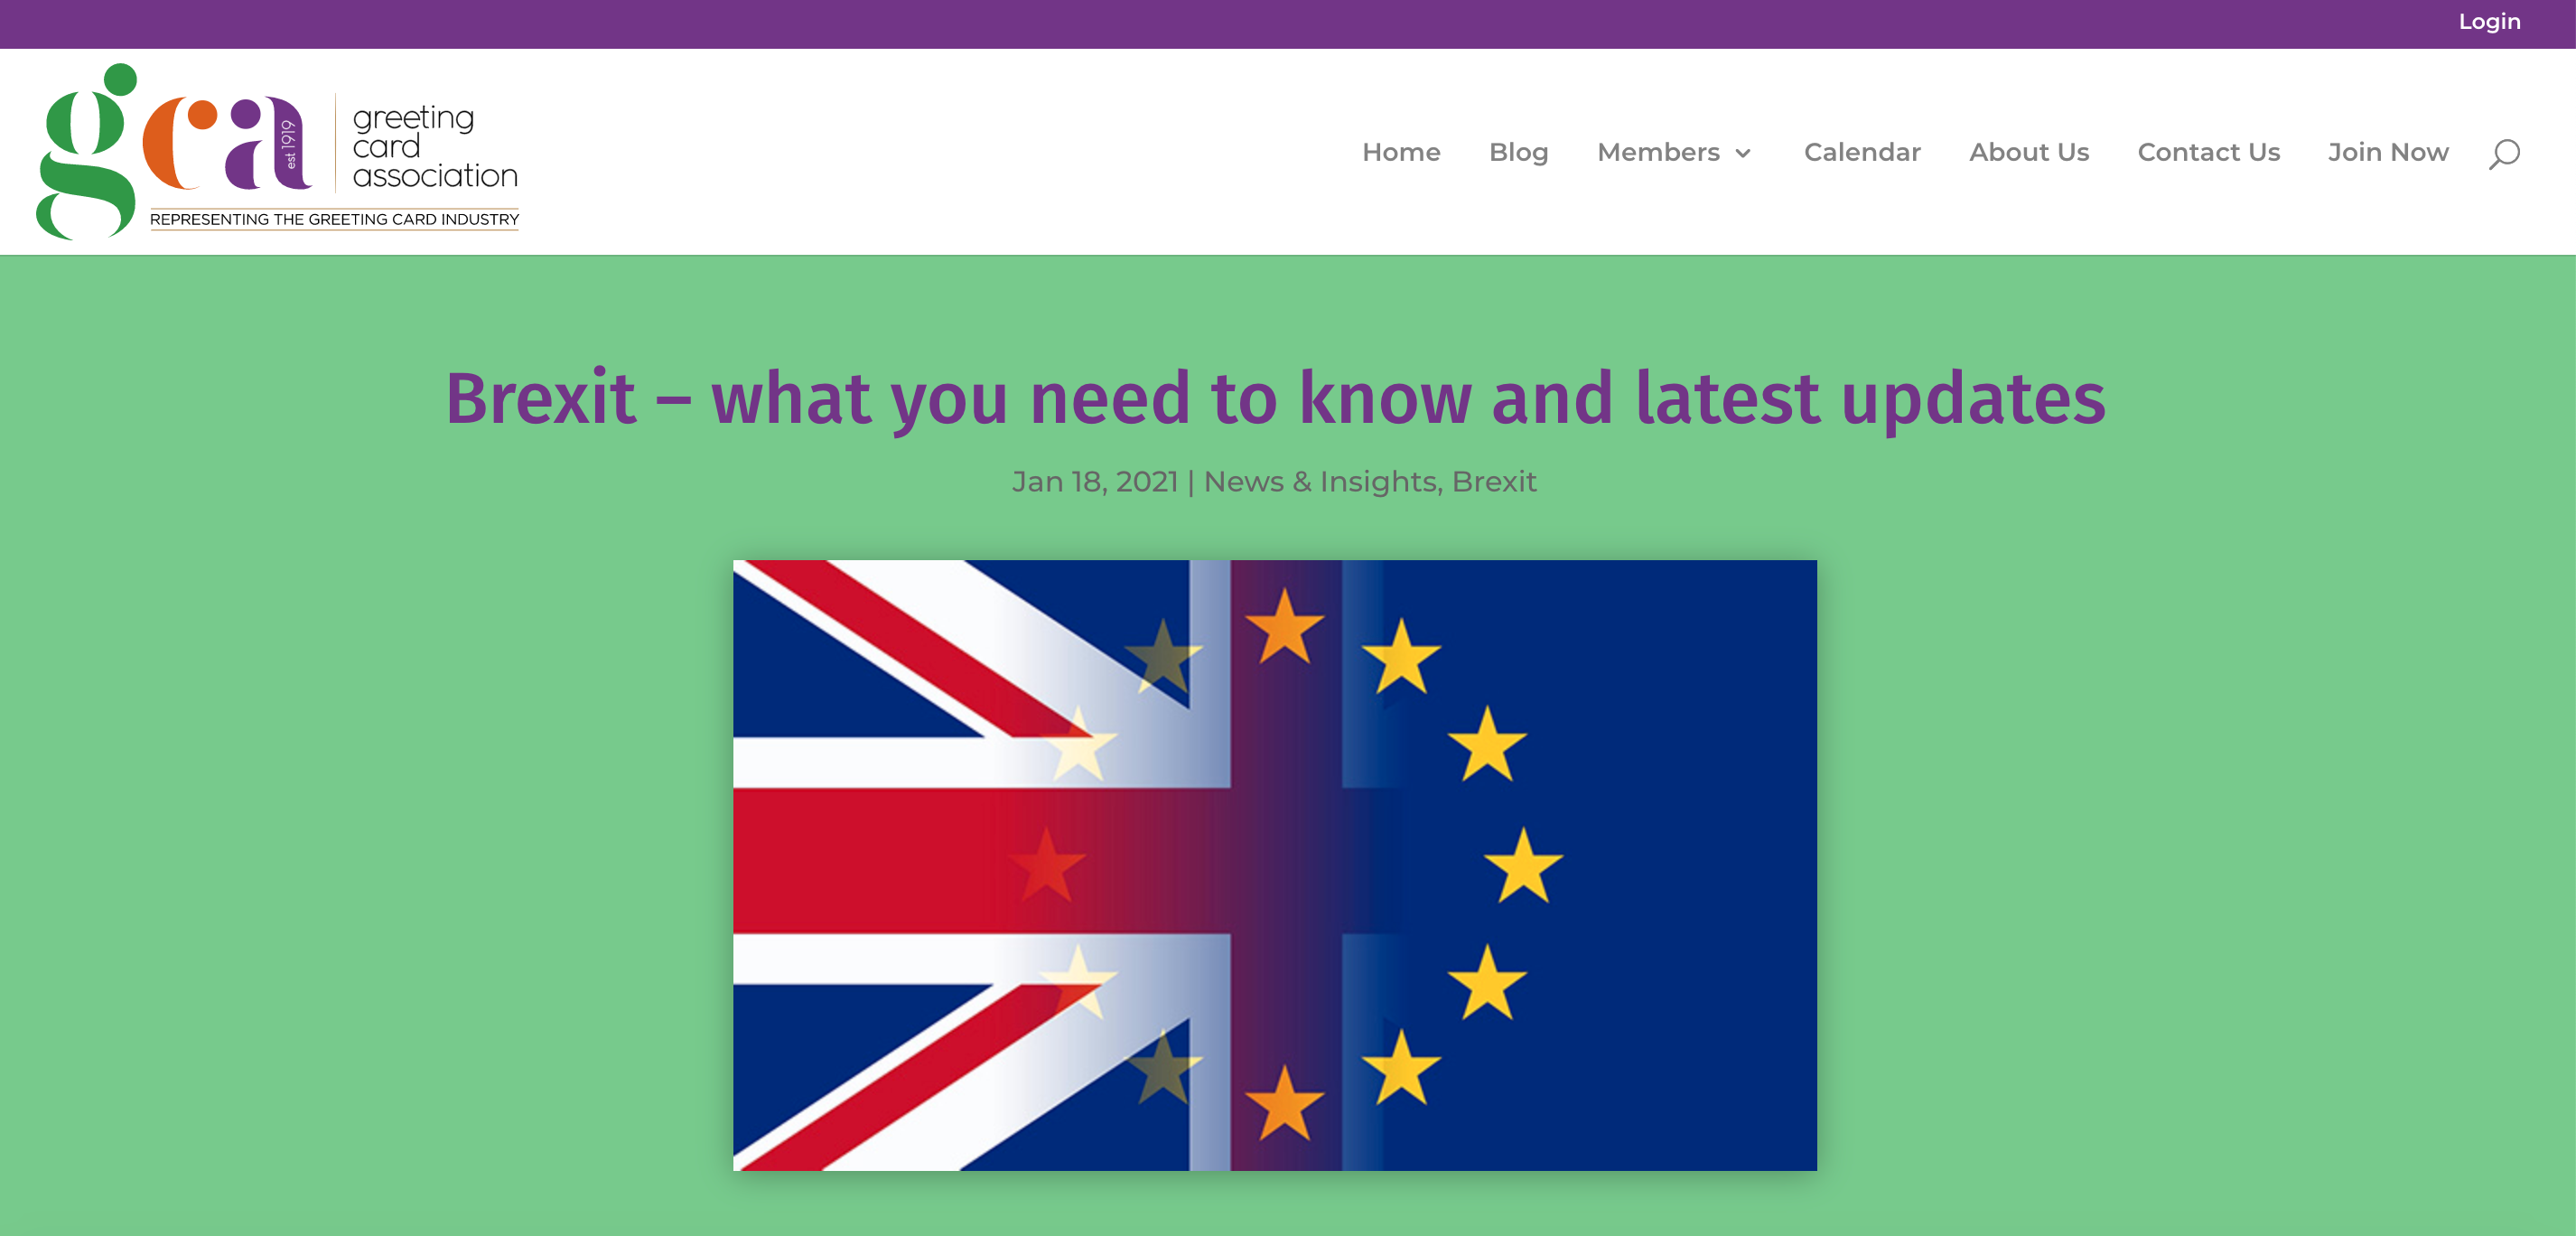 Above: The GCA website includes a dedicated blog post on the post Brexit situation that is updated regularly. The meeting recording though will only be available to GCA members.